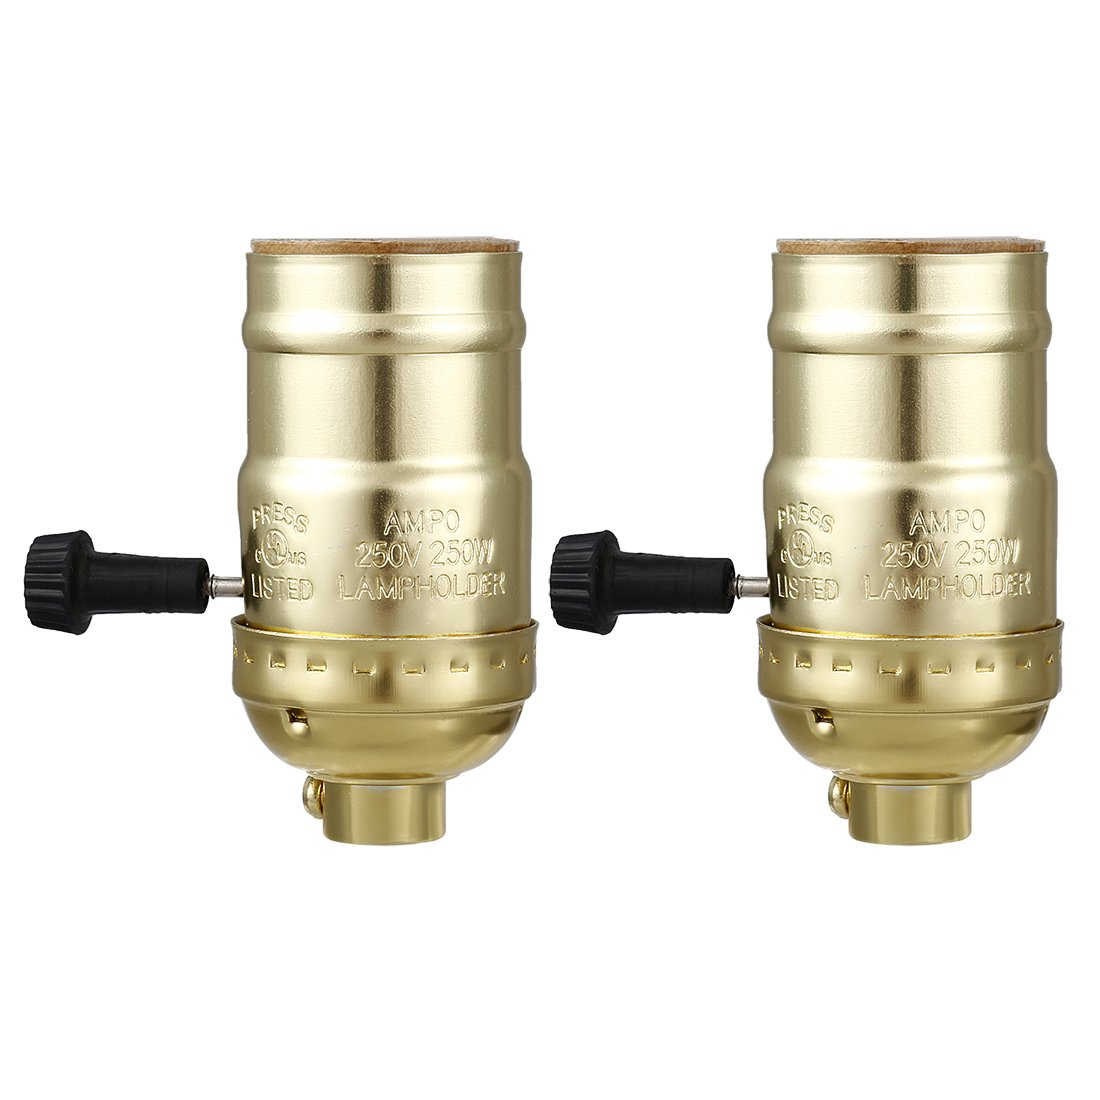 uxcell 2 Pcs 3 Way Lamp Socket Holder UL Listed E26 Type Removable Turn Knob Aluminum Shell Gold